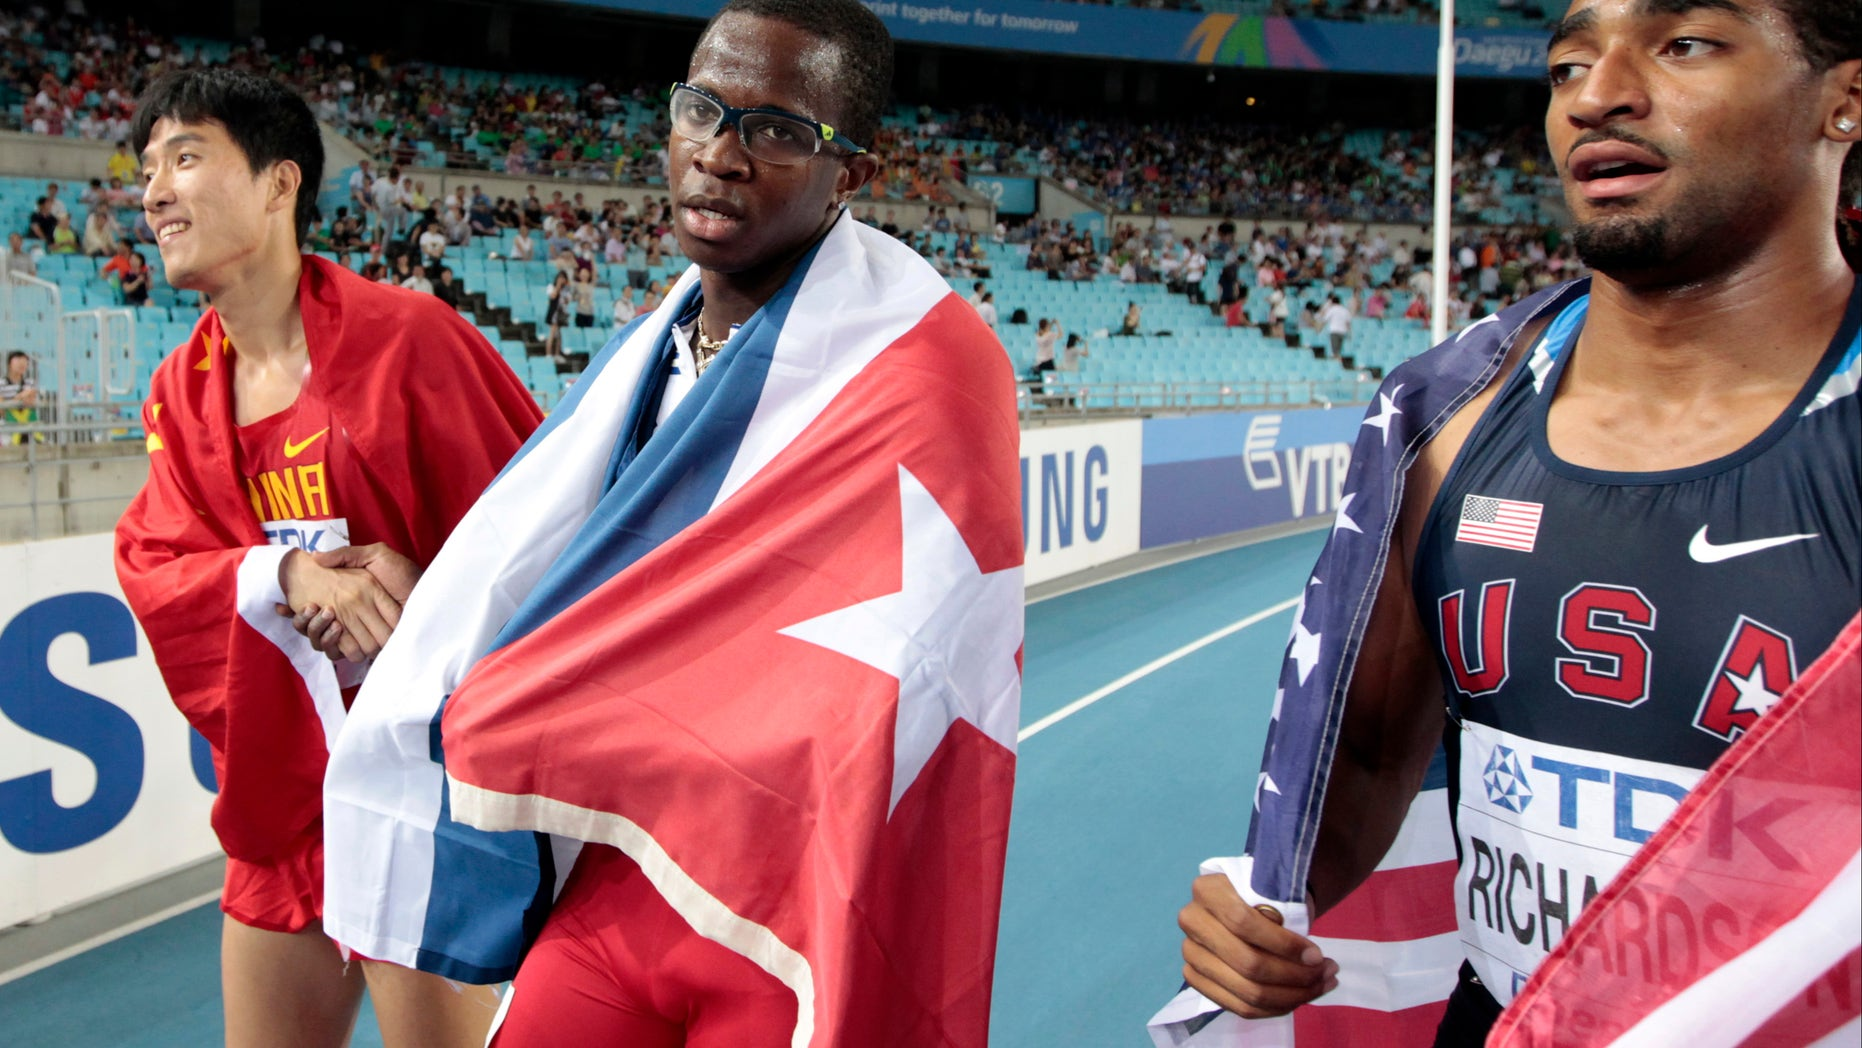 Aug. 29: Cuba's Dayron Robles, center,  walks with Cuban flag, after crossing the finish line first in the Me'n's 110m Hurdles final at the World Athletics Championships in Daegu, South Korea. Robles finished first but was later disqualified for making contact with China's Liu Xiang, left.